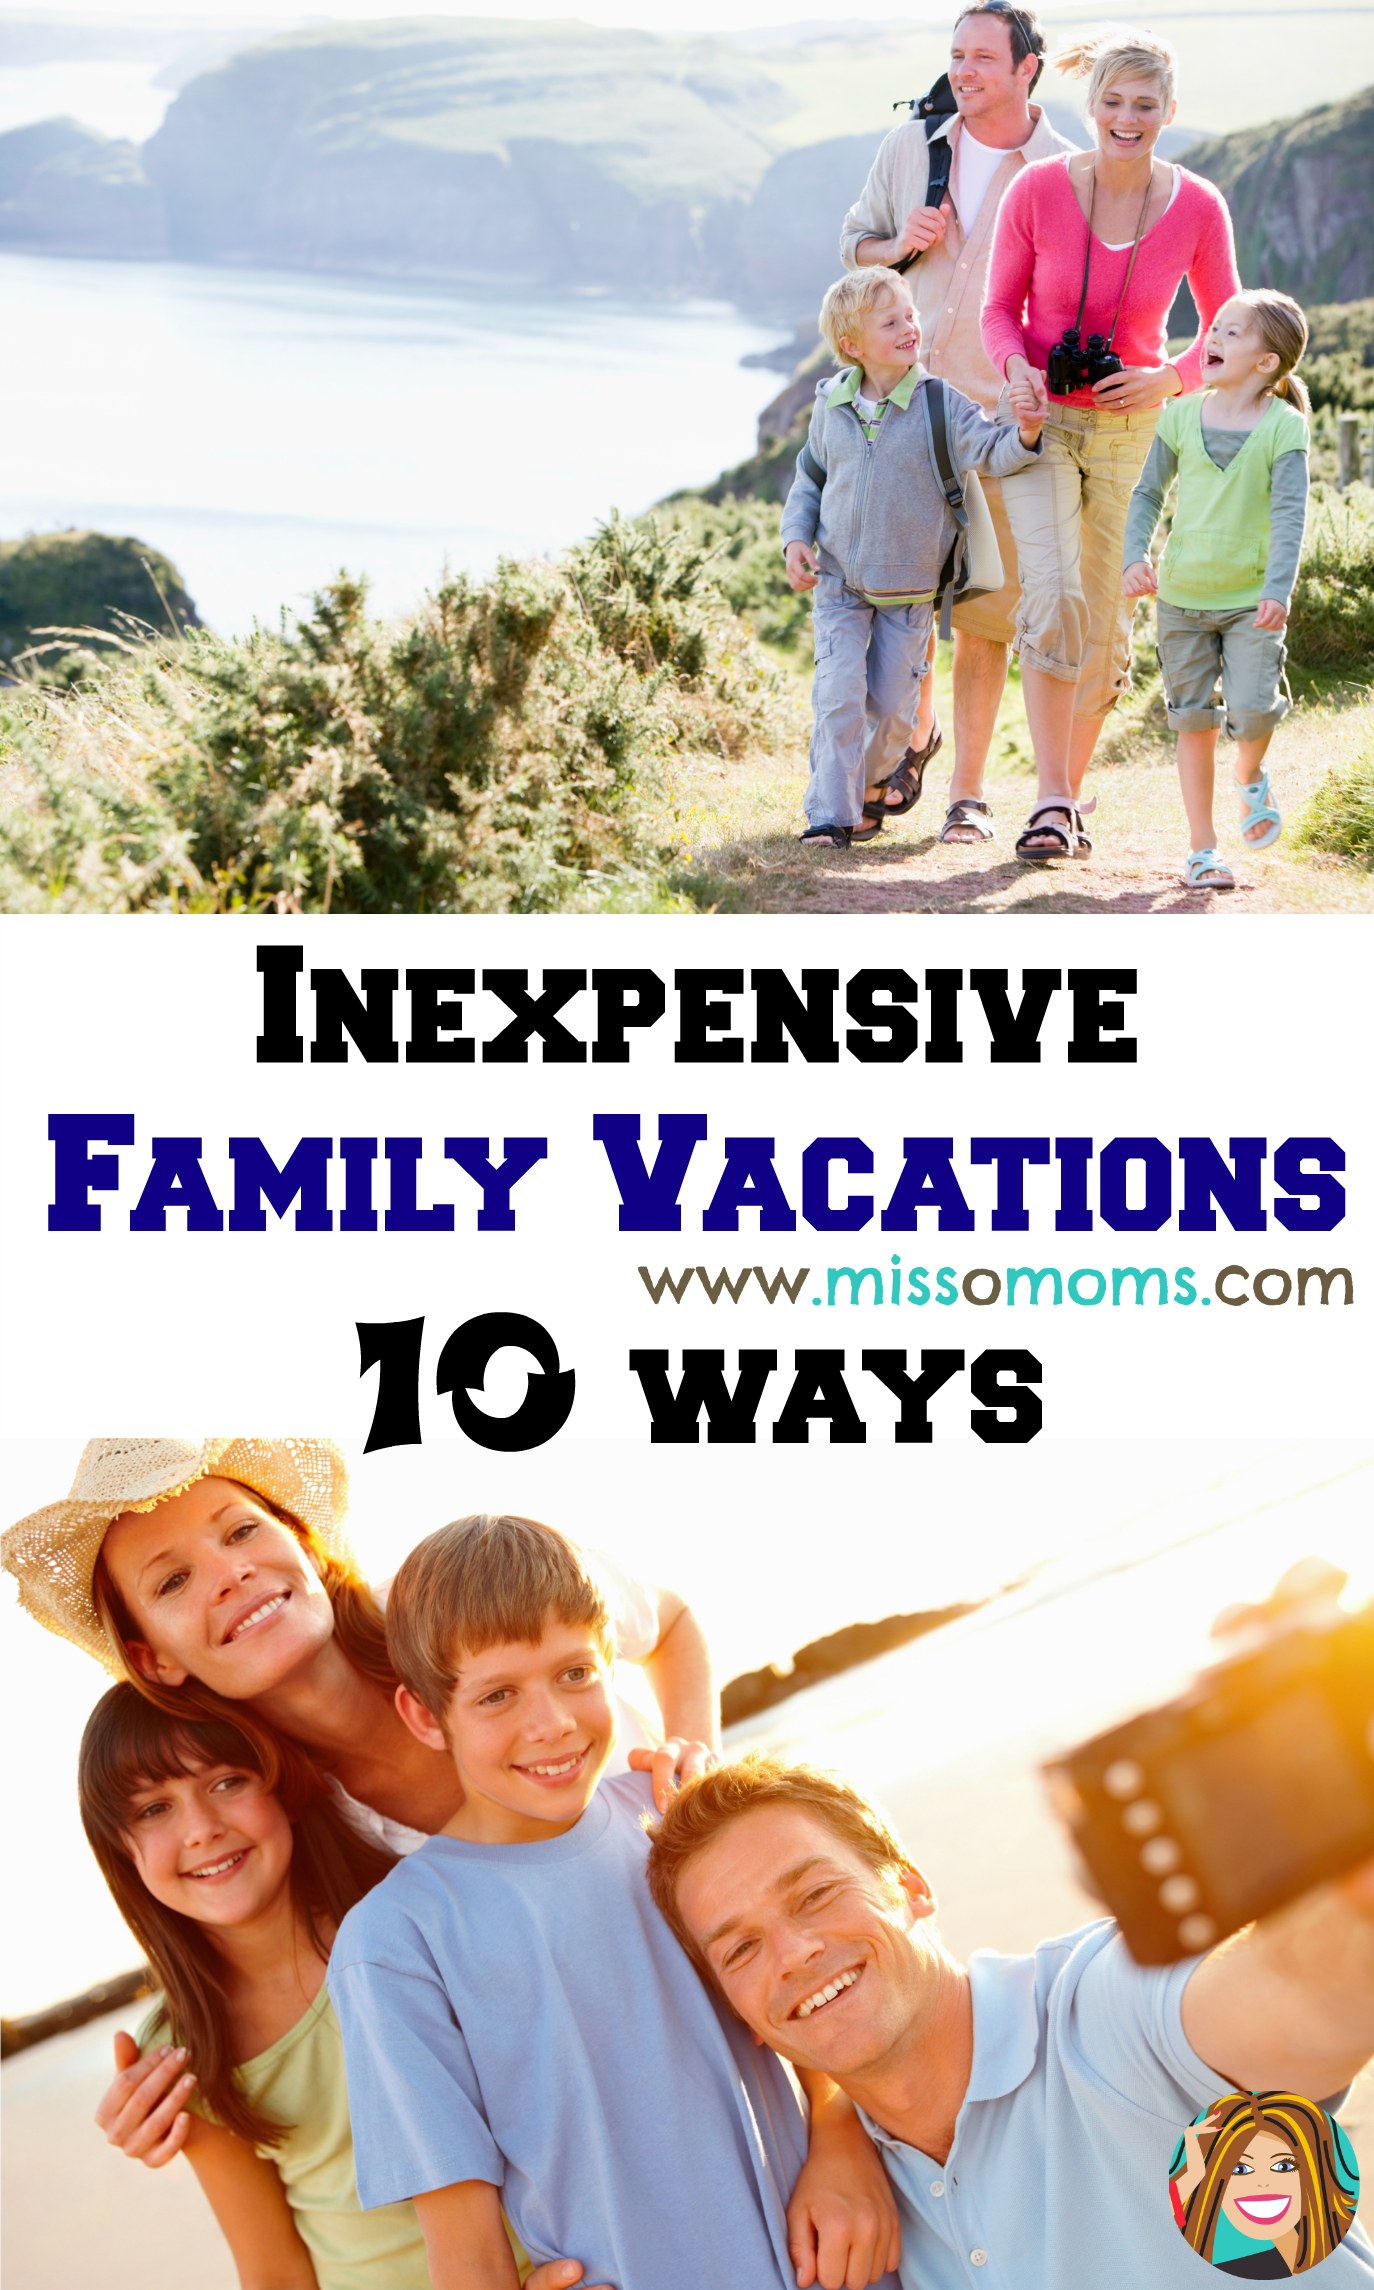 There is a chance to actually book inexpensive family